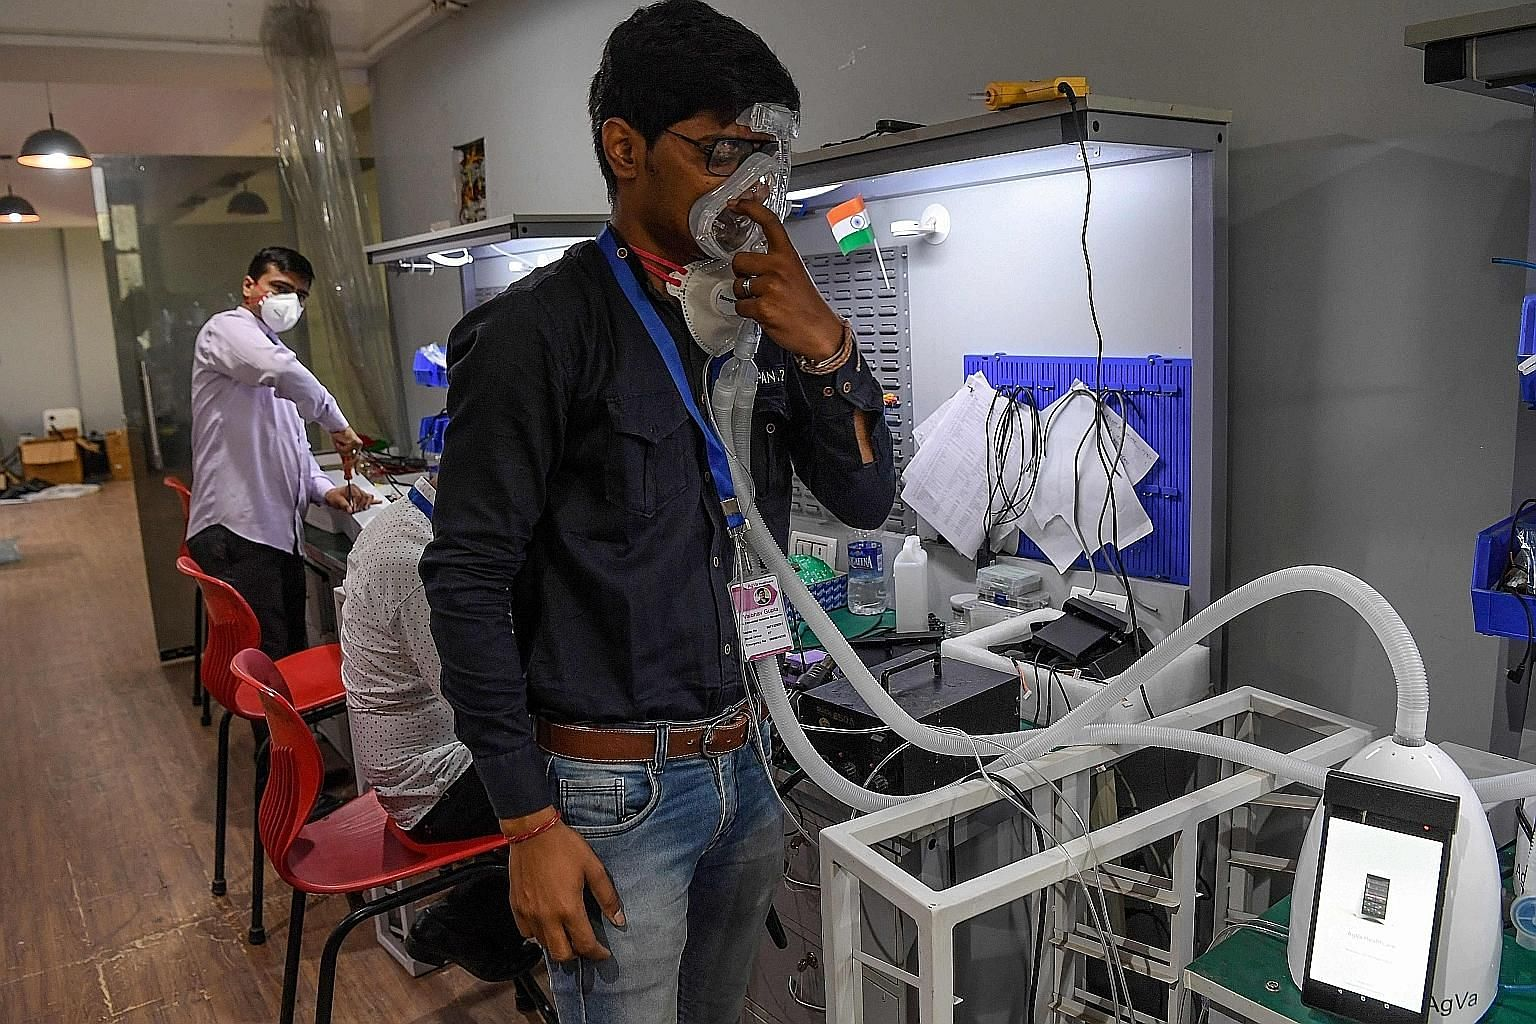 An AgVa Healthcare employee showing how the company's ventilator works, at the research centre in Uttar Pradesh state, in March. The company came up with the toaster-sized ventilator that is priced at less than a fourth of conventional ventilators, a